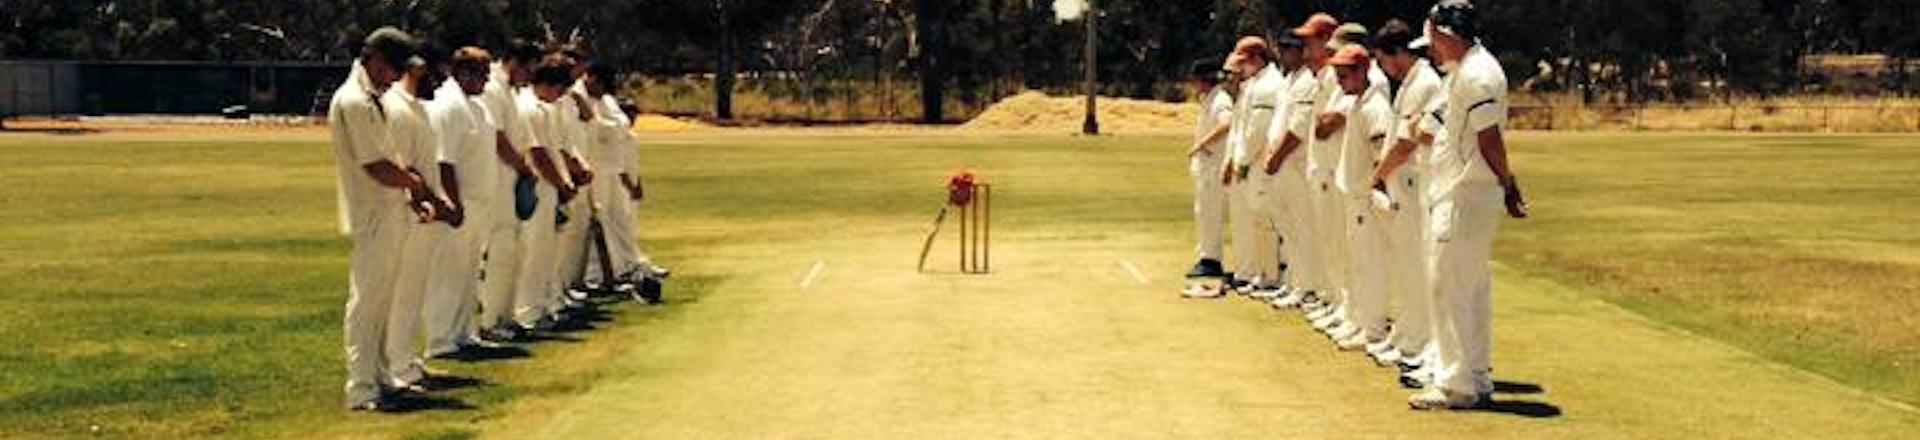 Banner - Cricket Club » Shire of Quairading